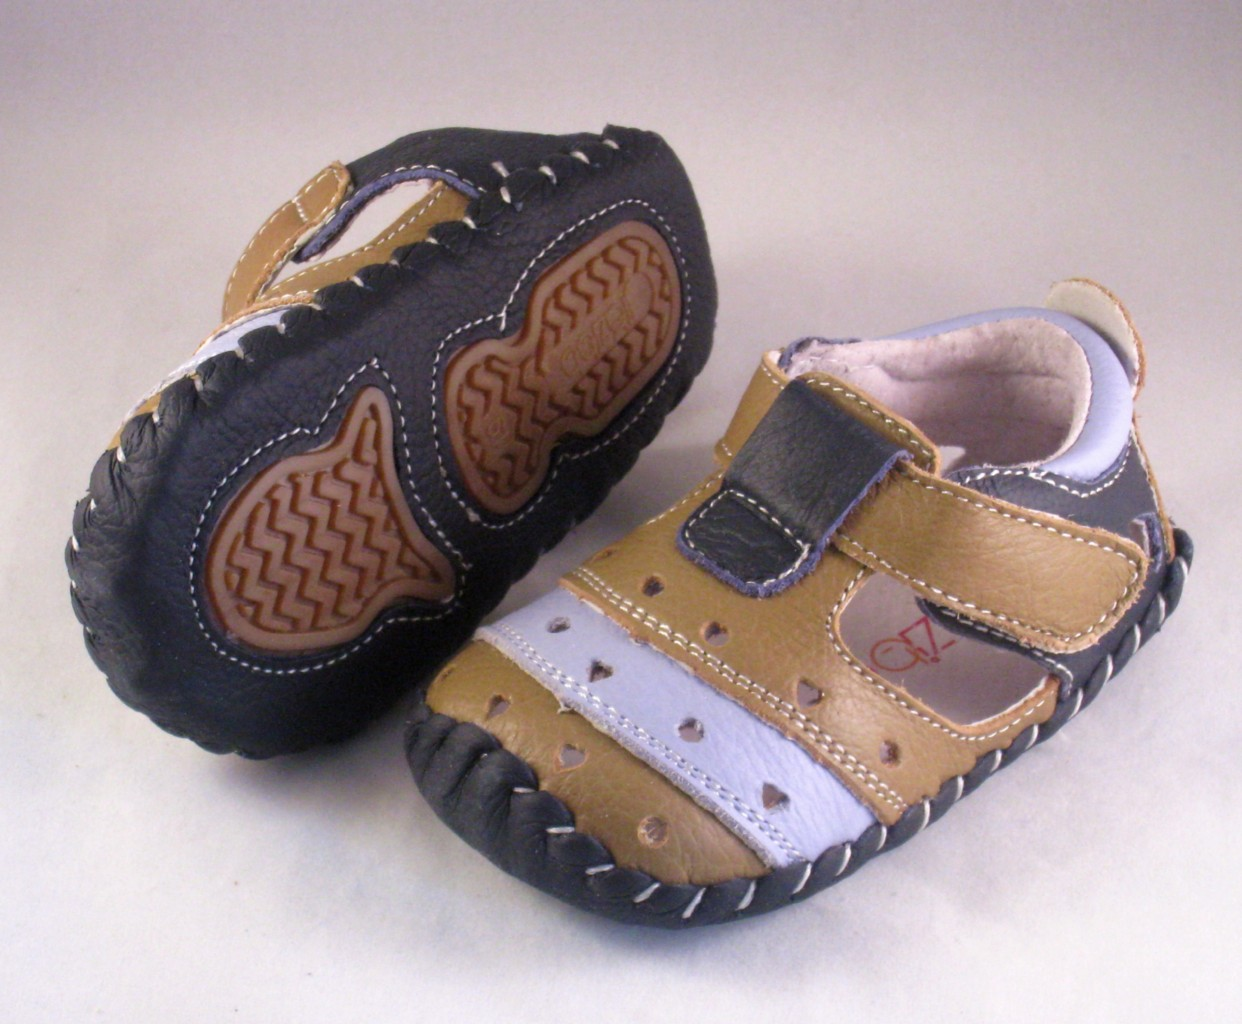 Buy low price, high quality baby boys shoes size 4 with worldwide shipping on ingmecanica.ml